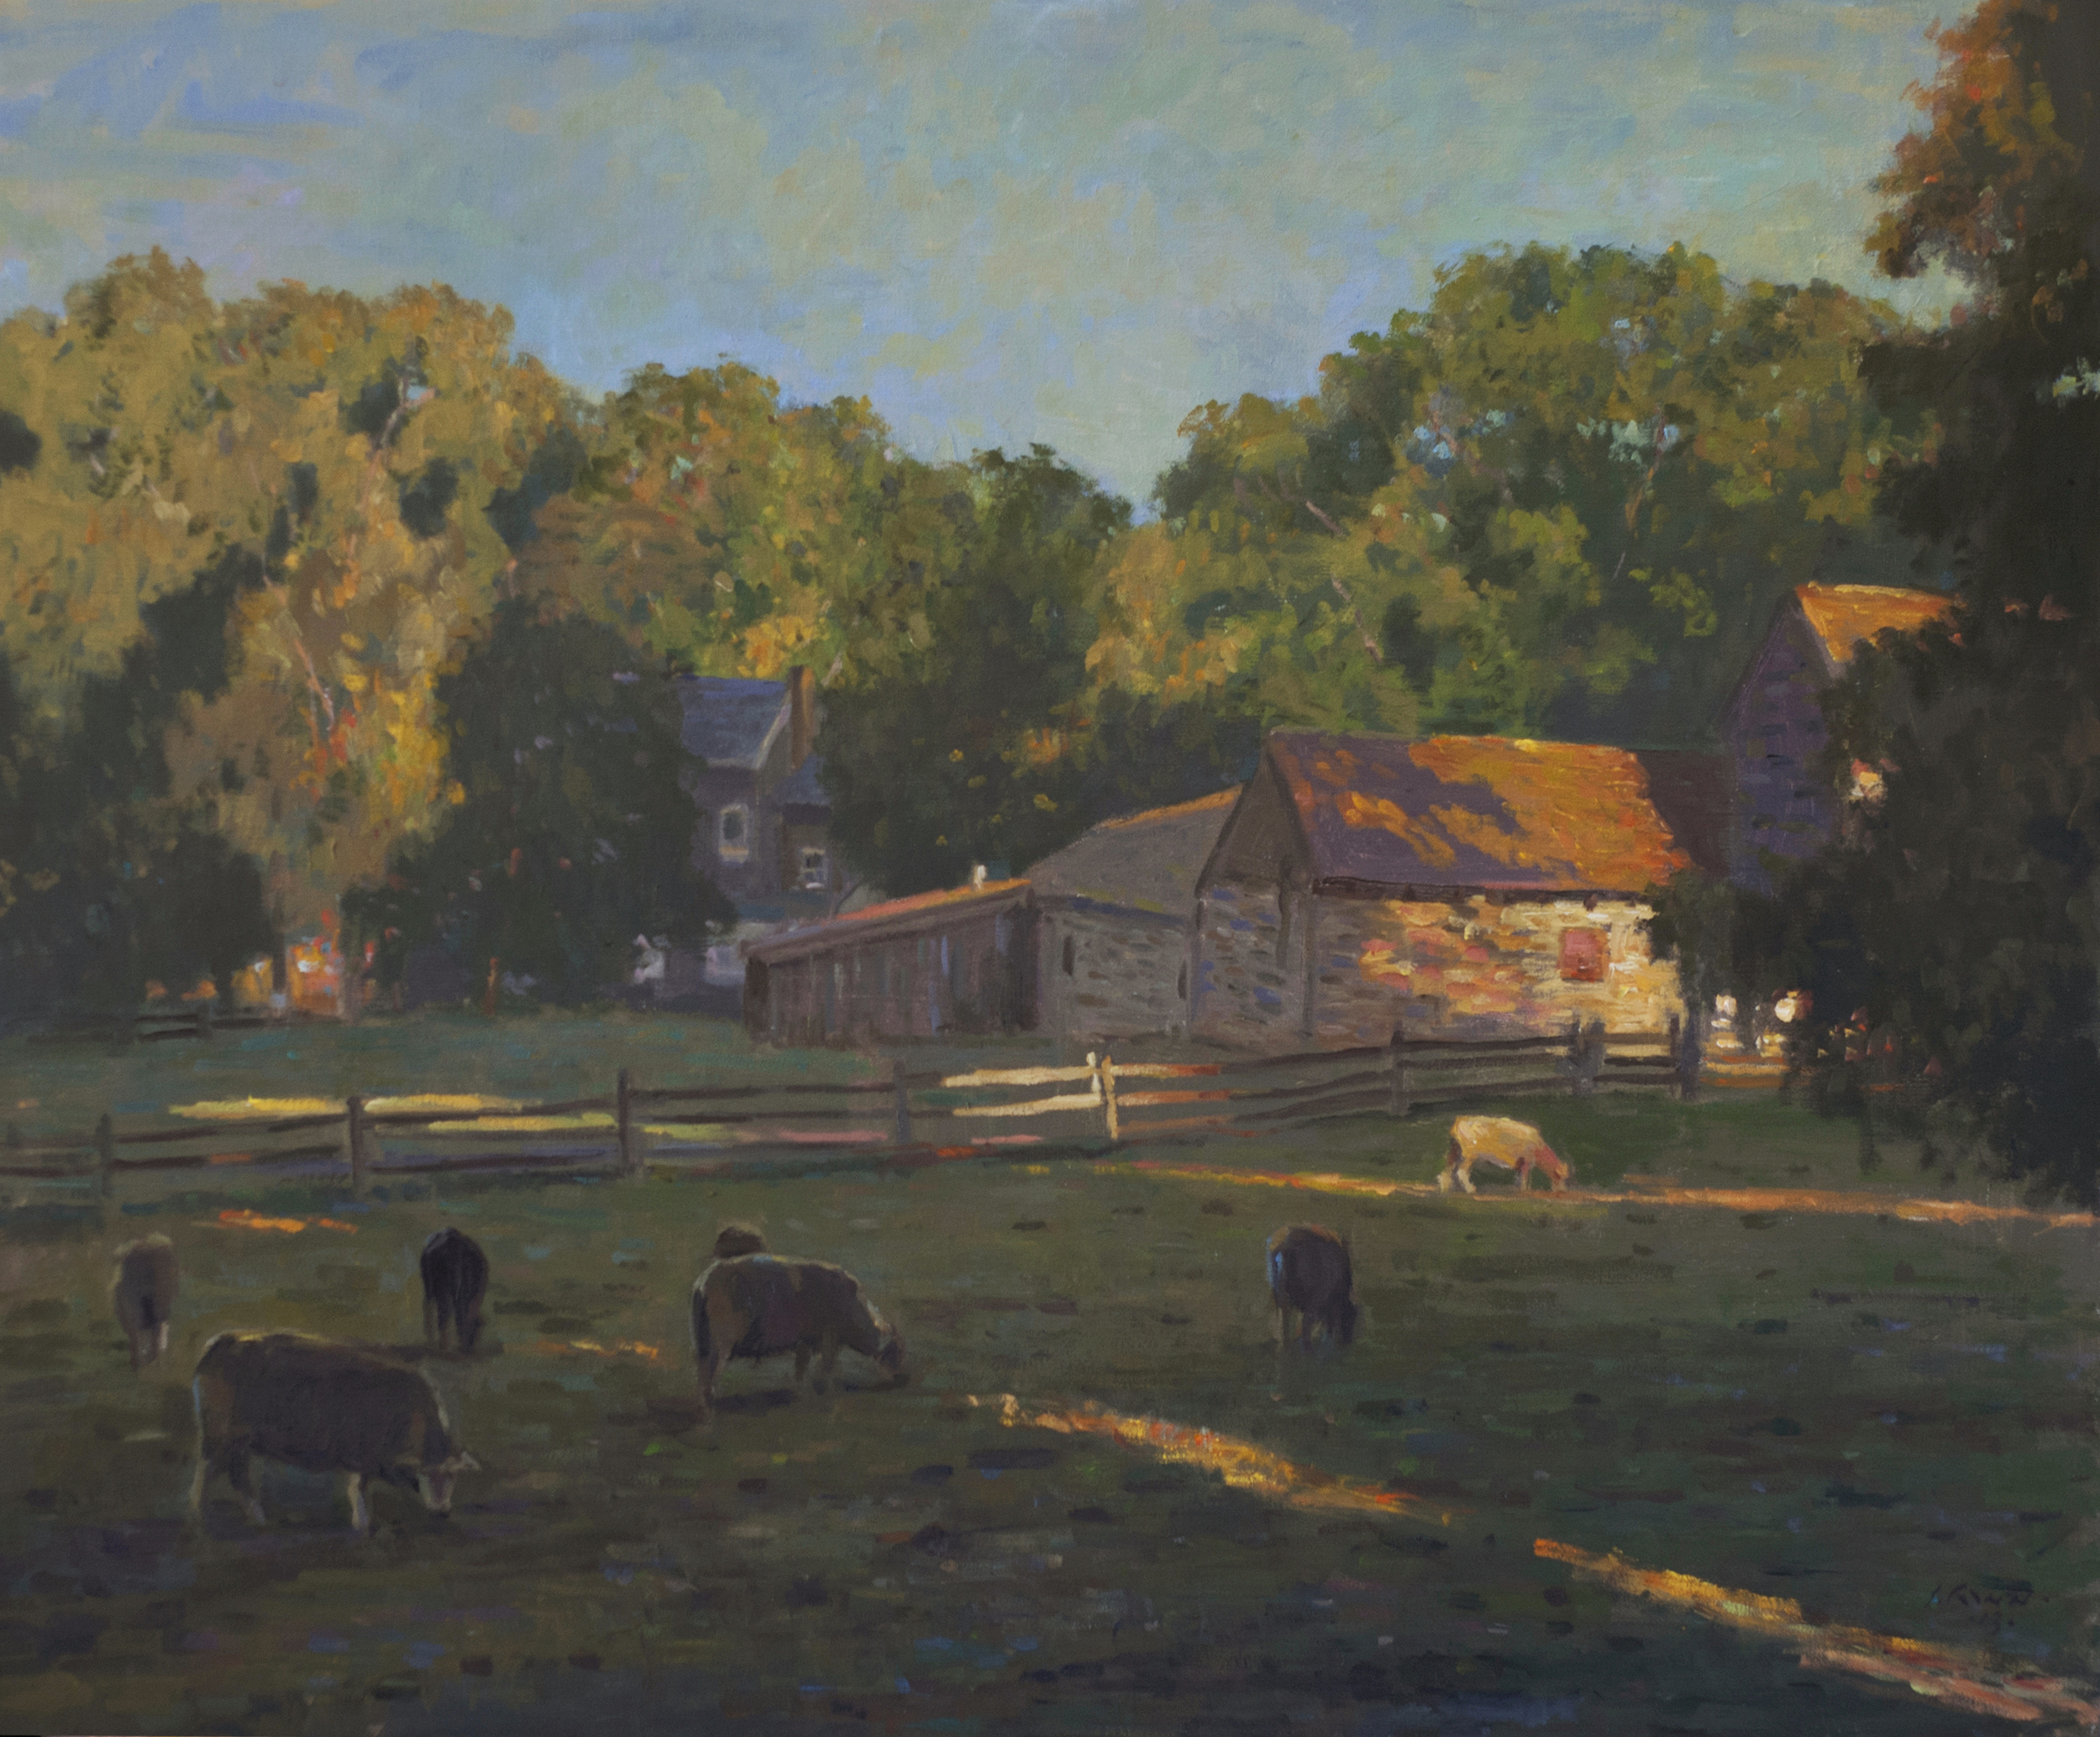 Farm End of Day, Oil on linen, 24x30 inches.